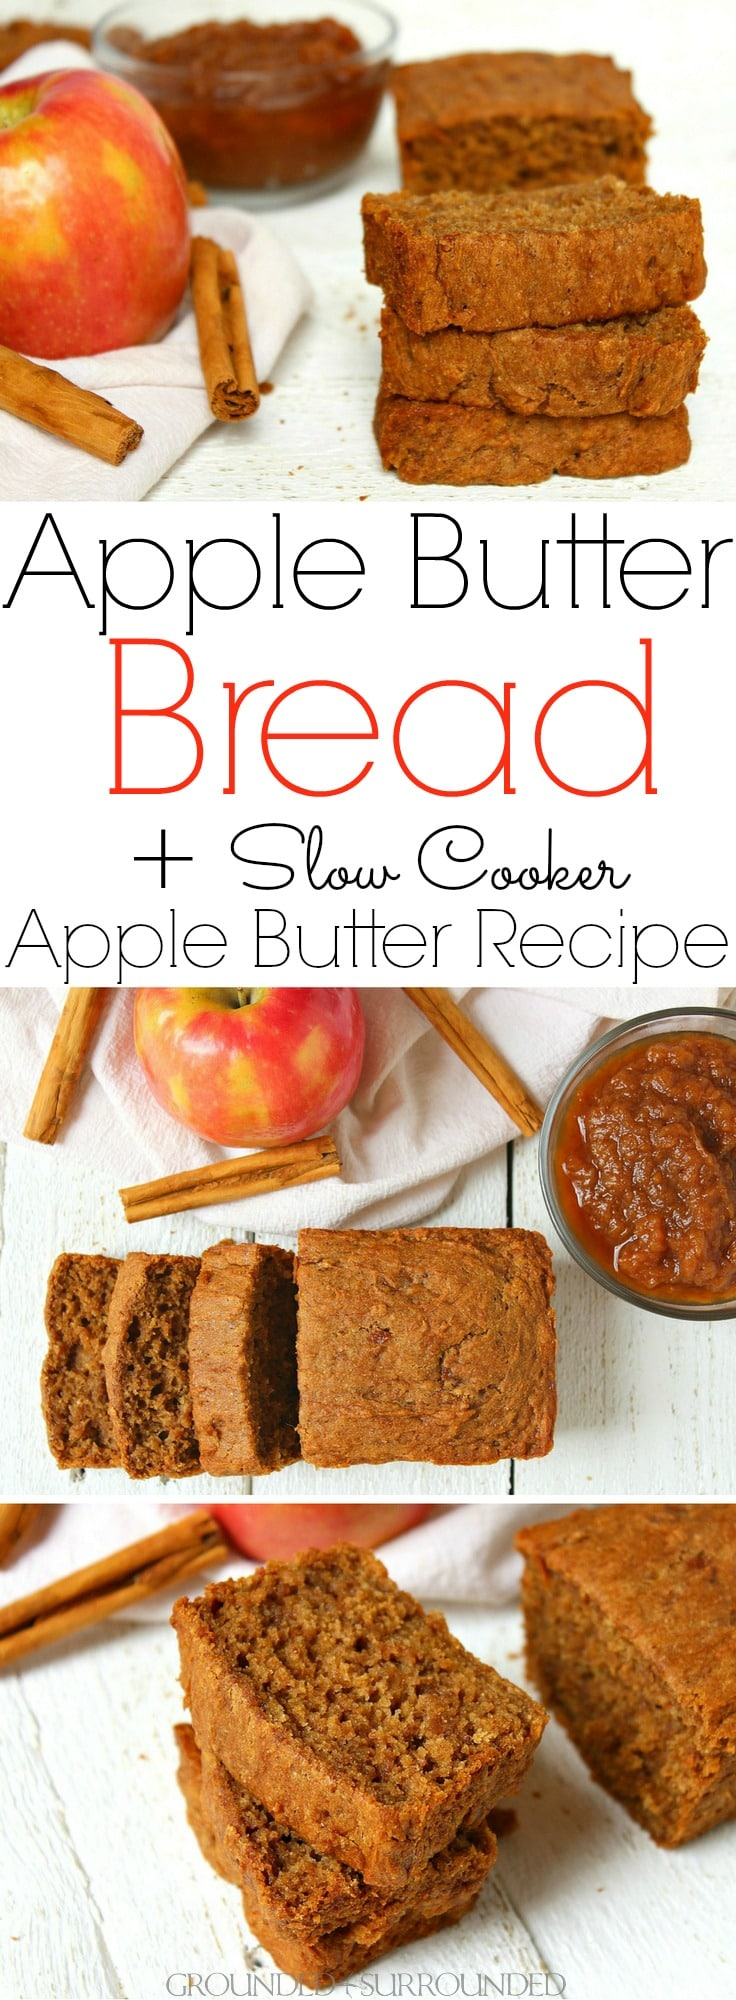 The BEST Apple Butter Bread + Slow Cooker Apple Butter Recipe | This gluten-free sweet bread is our favorite fall breakfast recipe! If you are looking for an easy sweet bread recipe to make the most of autumn flavors make this healthy crock pot apple butter AND then bake this bread! Baking when the weather turns crisp is my favorite activity. This batter makes a wonderful muffin to pack in school lunches and to freeze for those busy mornings too!